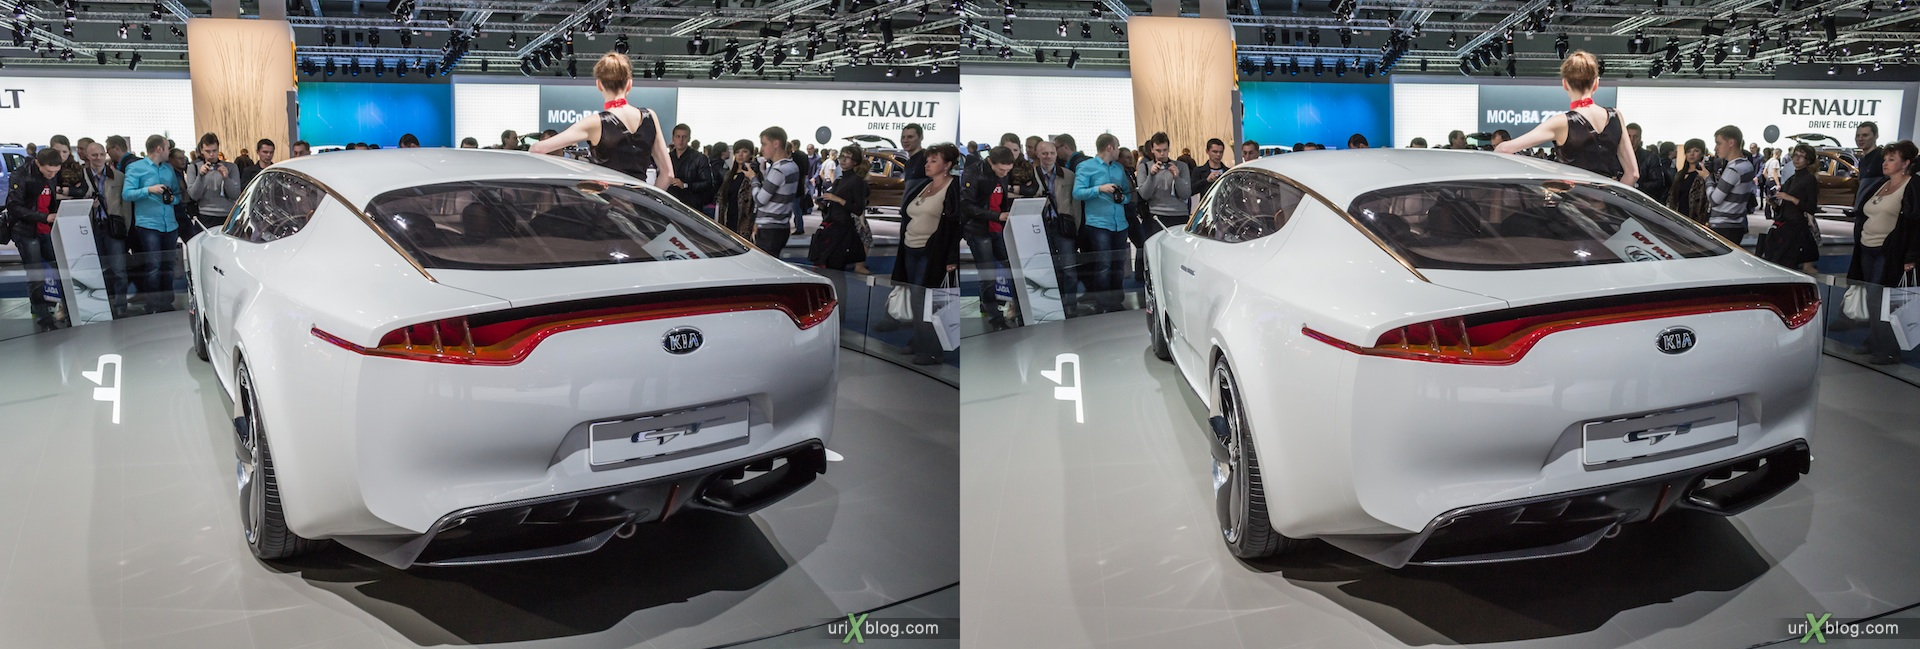 2012, KIA GT, Moscow International Automobile Salon, auto show, 3D, stereo pair, cross-eyed, crossview